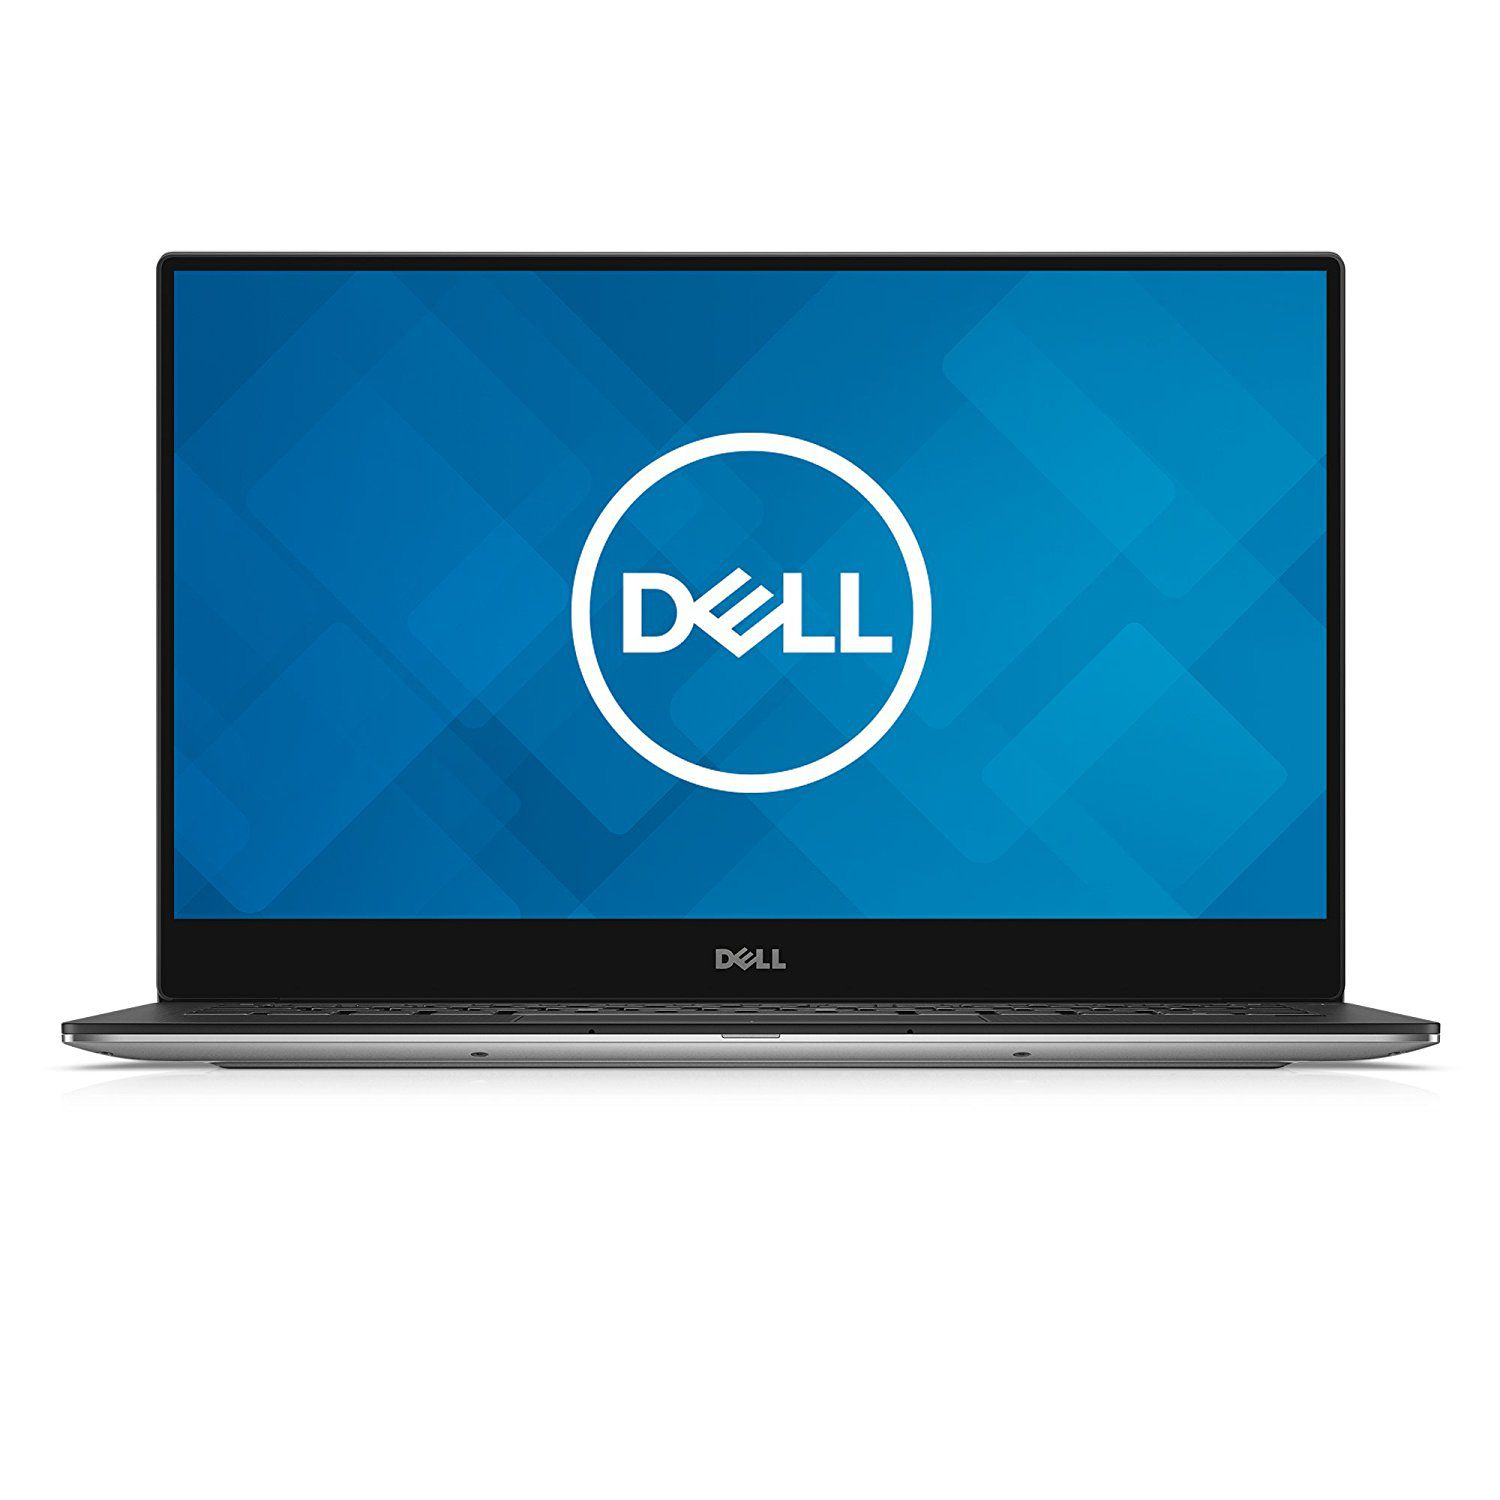 Best Overall Dell XPS9360 7758SLV PUS